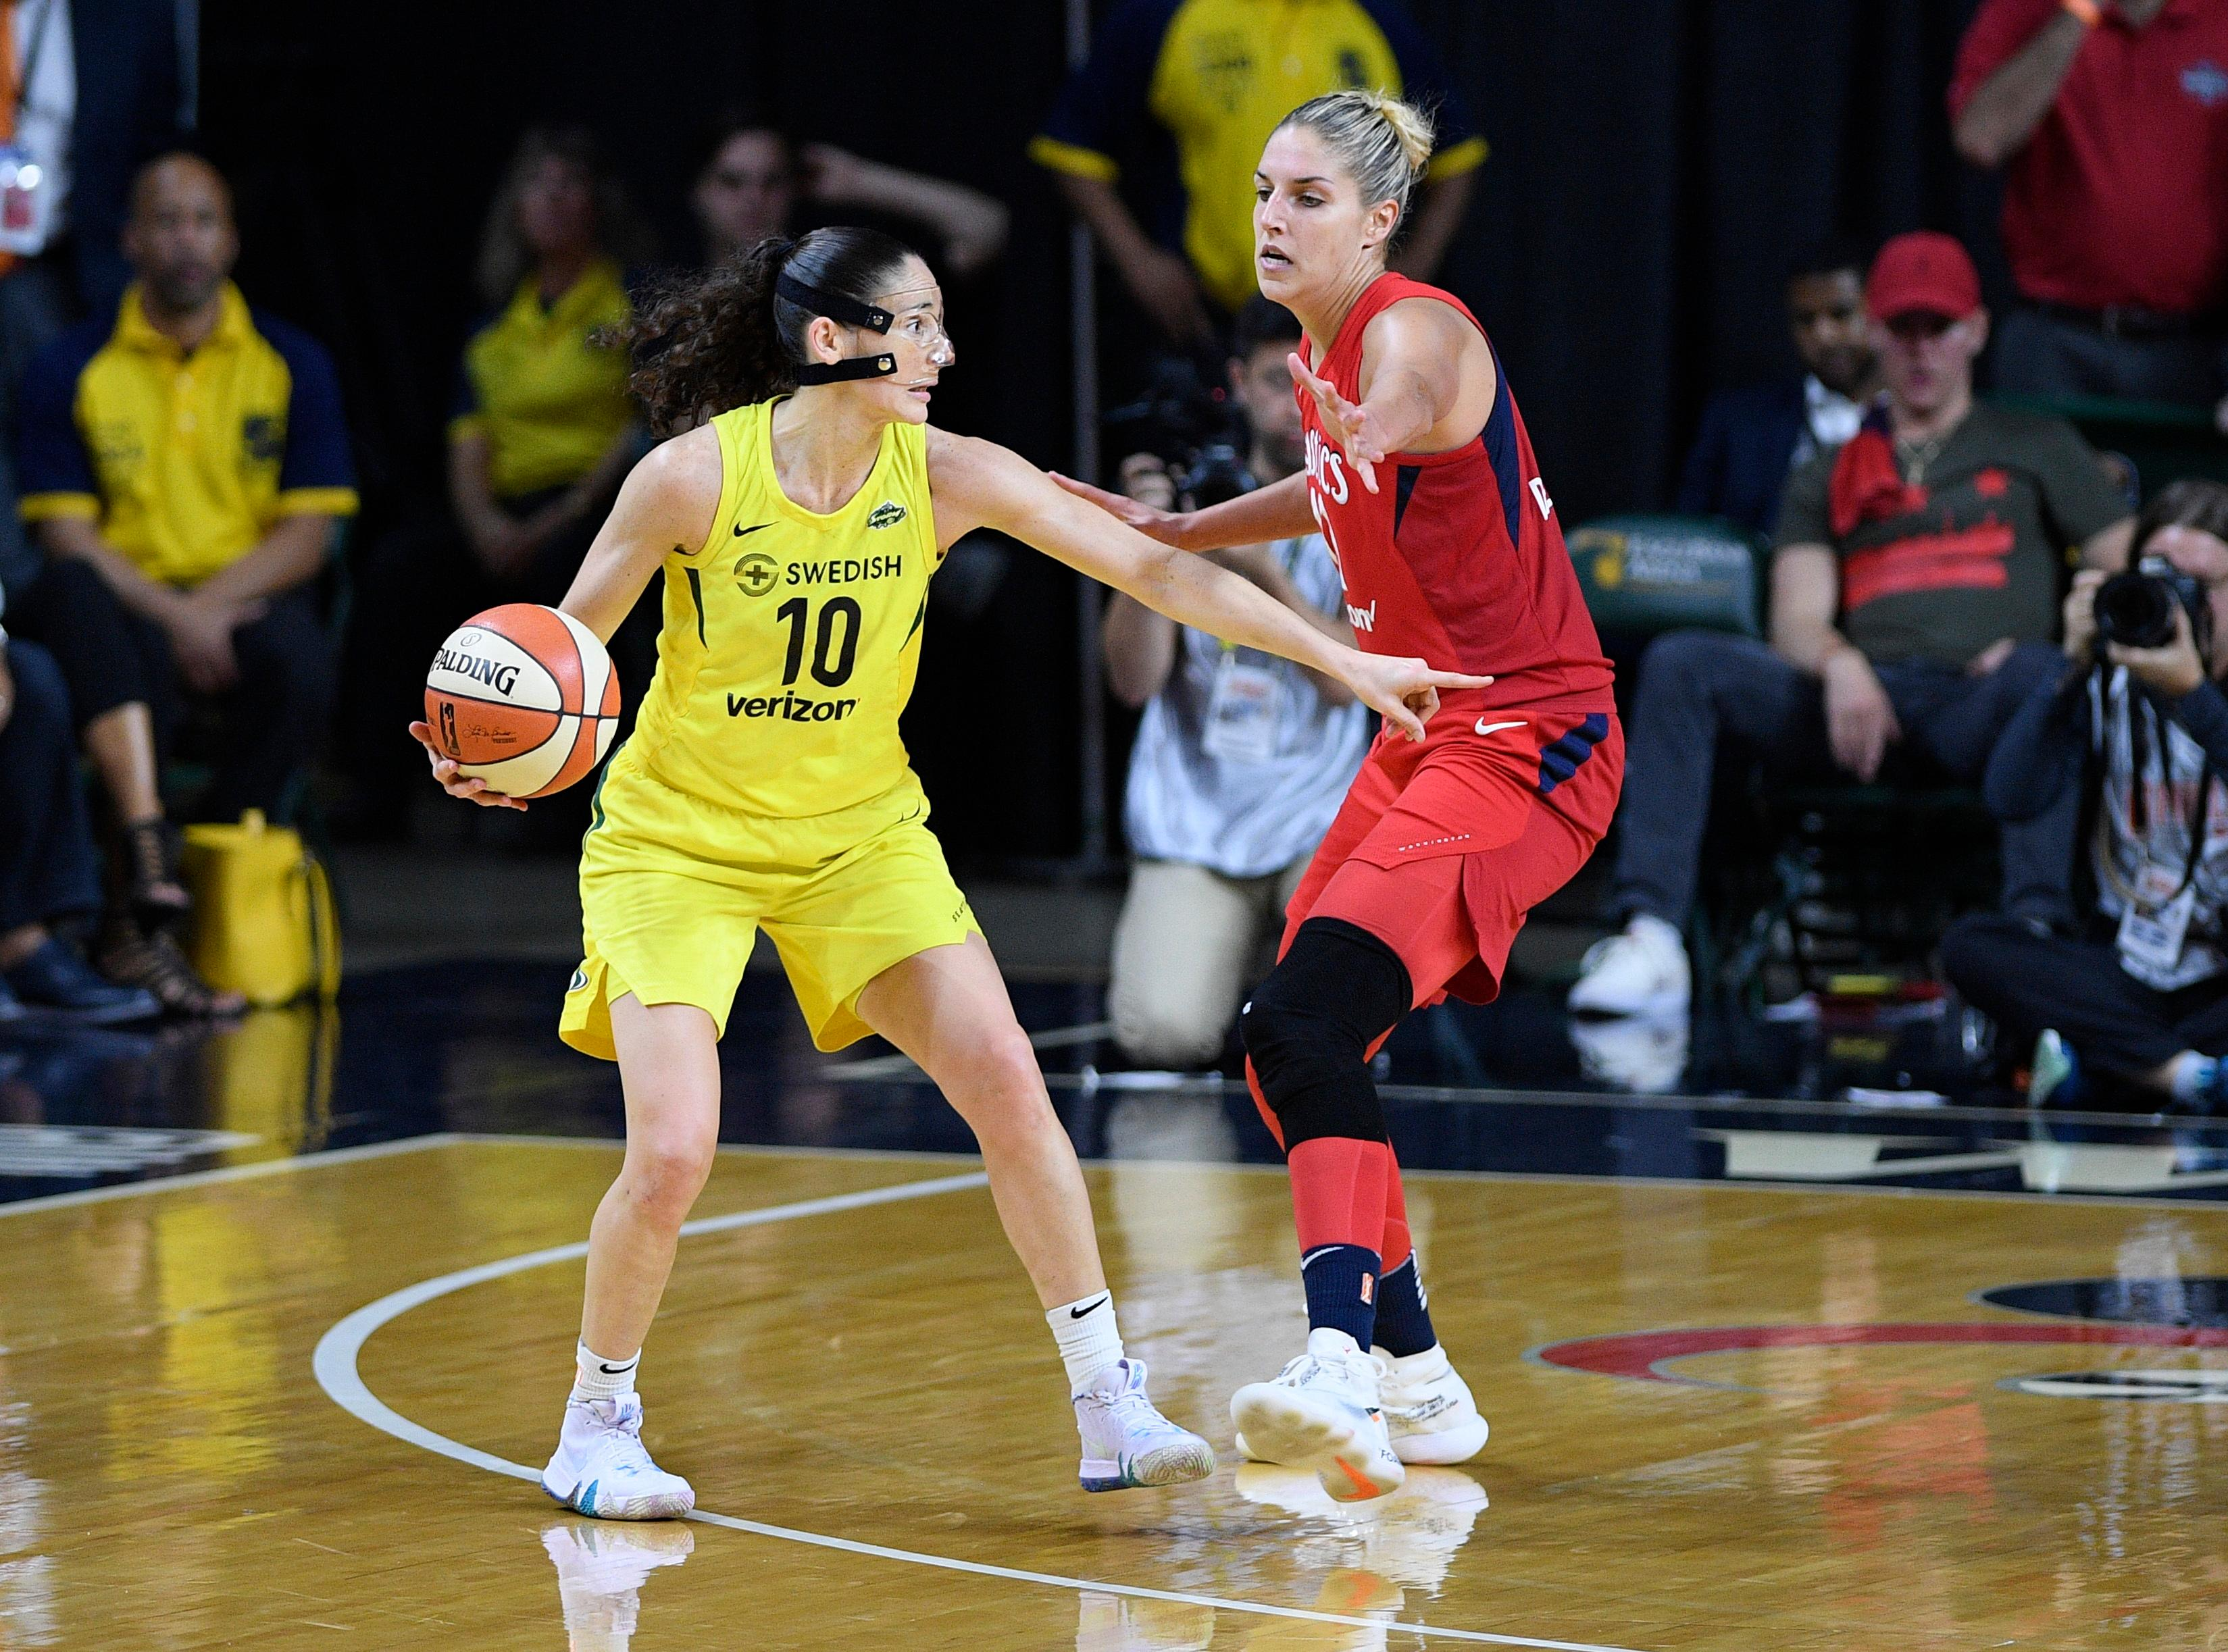 Seattle Storm guard Sue Bird (10) dribbles against Washington Mystics forward Elena Delle Donne, right, during the second half of Game 3 of the WNBA basketball finals, Wednesday, Sept. 12, 2018, in Fairfax, Va. The Storm won 98-82 and the title. (AP Photo/Nick Wass)